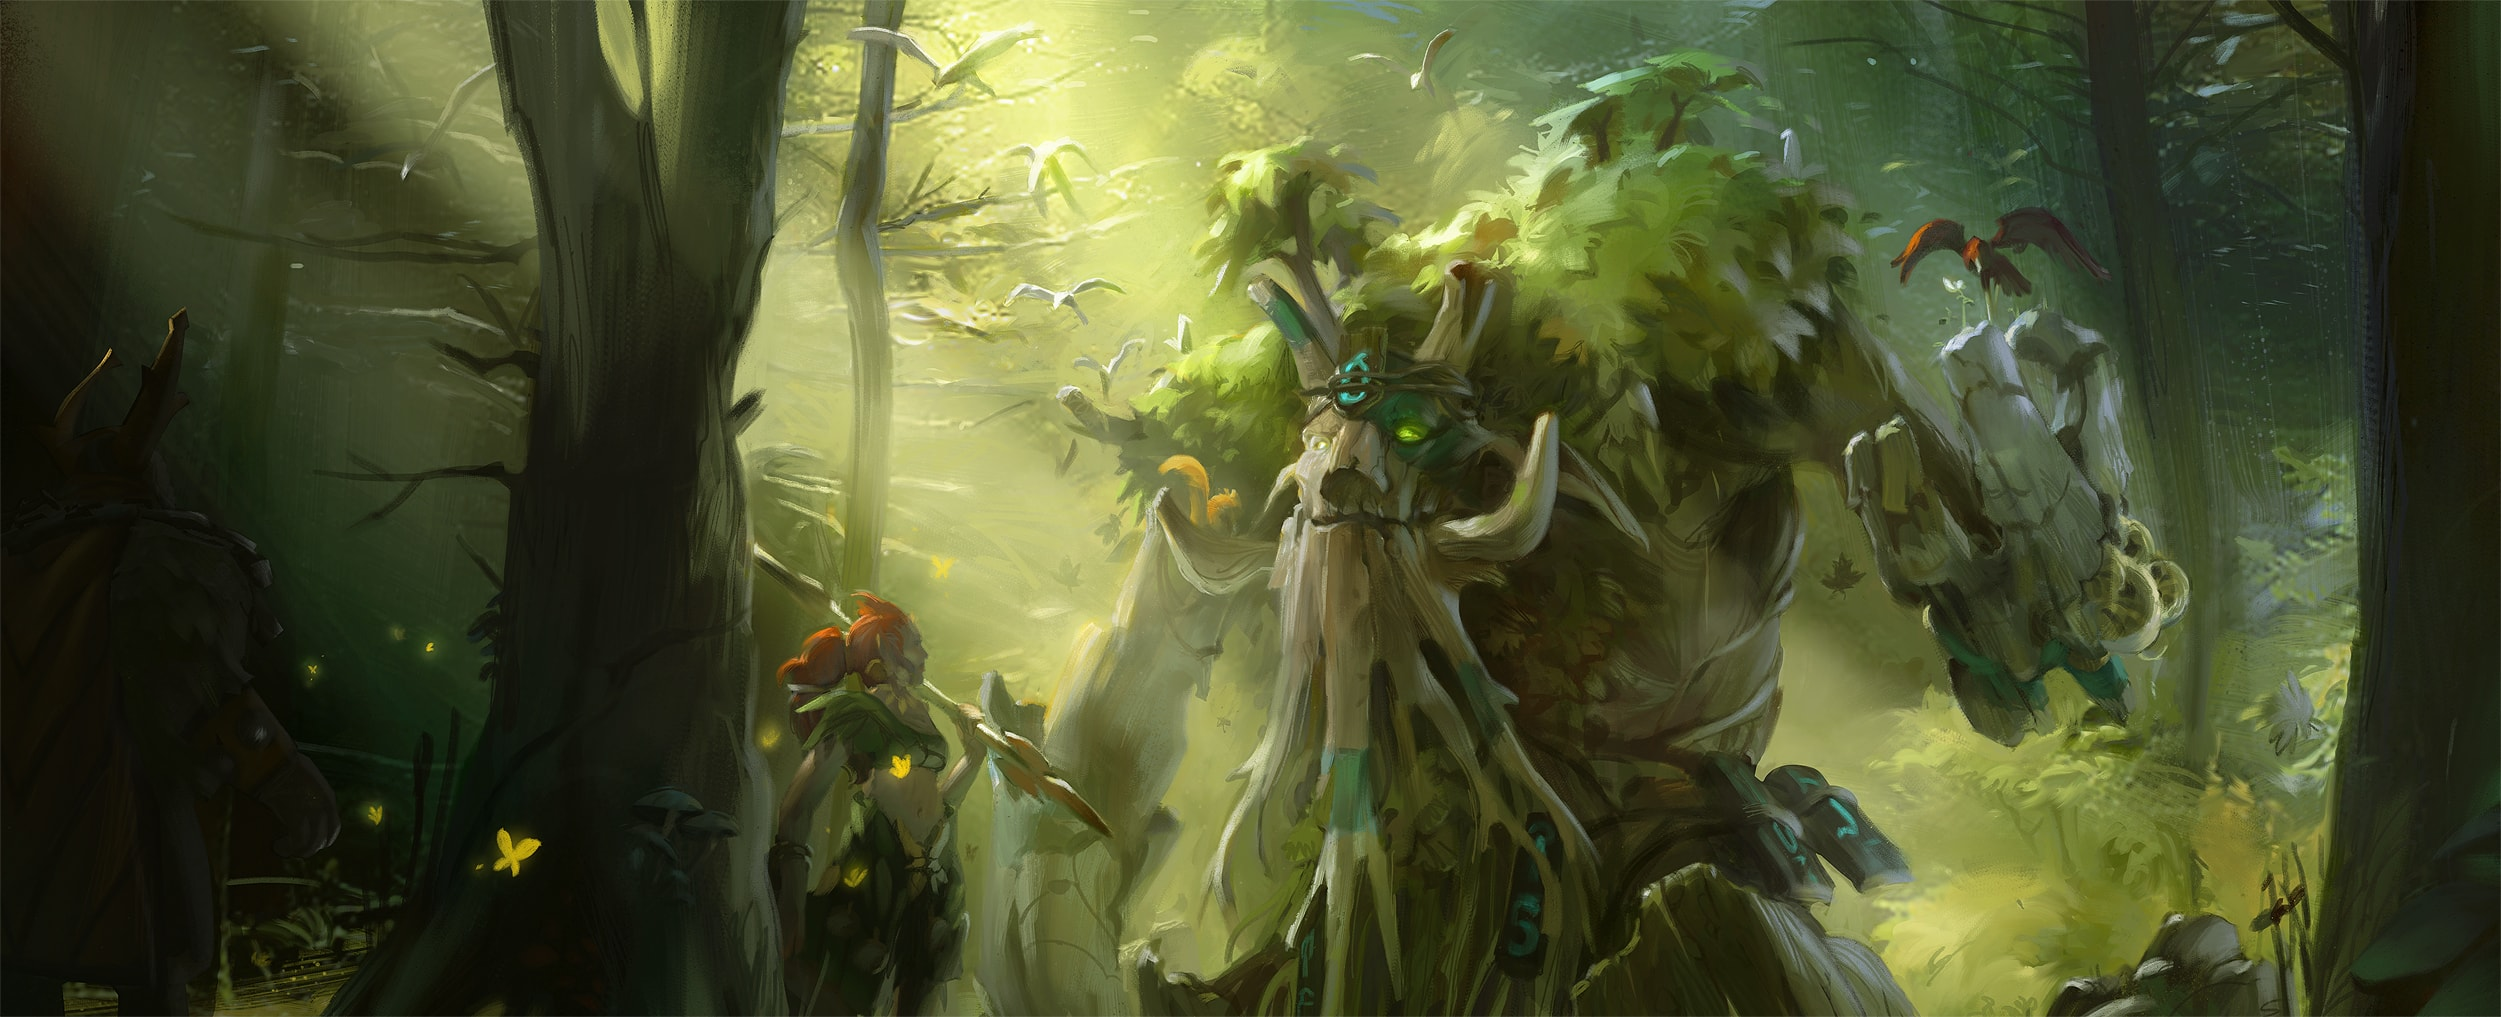 Dota2 : Treant Protector widescreen wallpapers